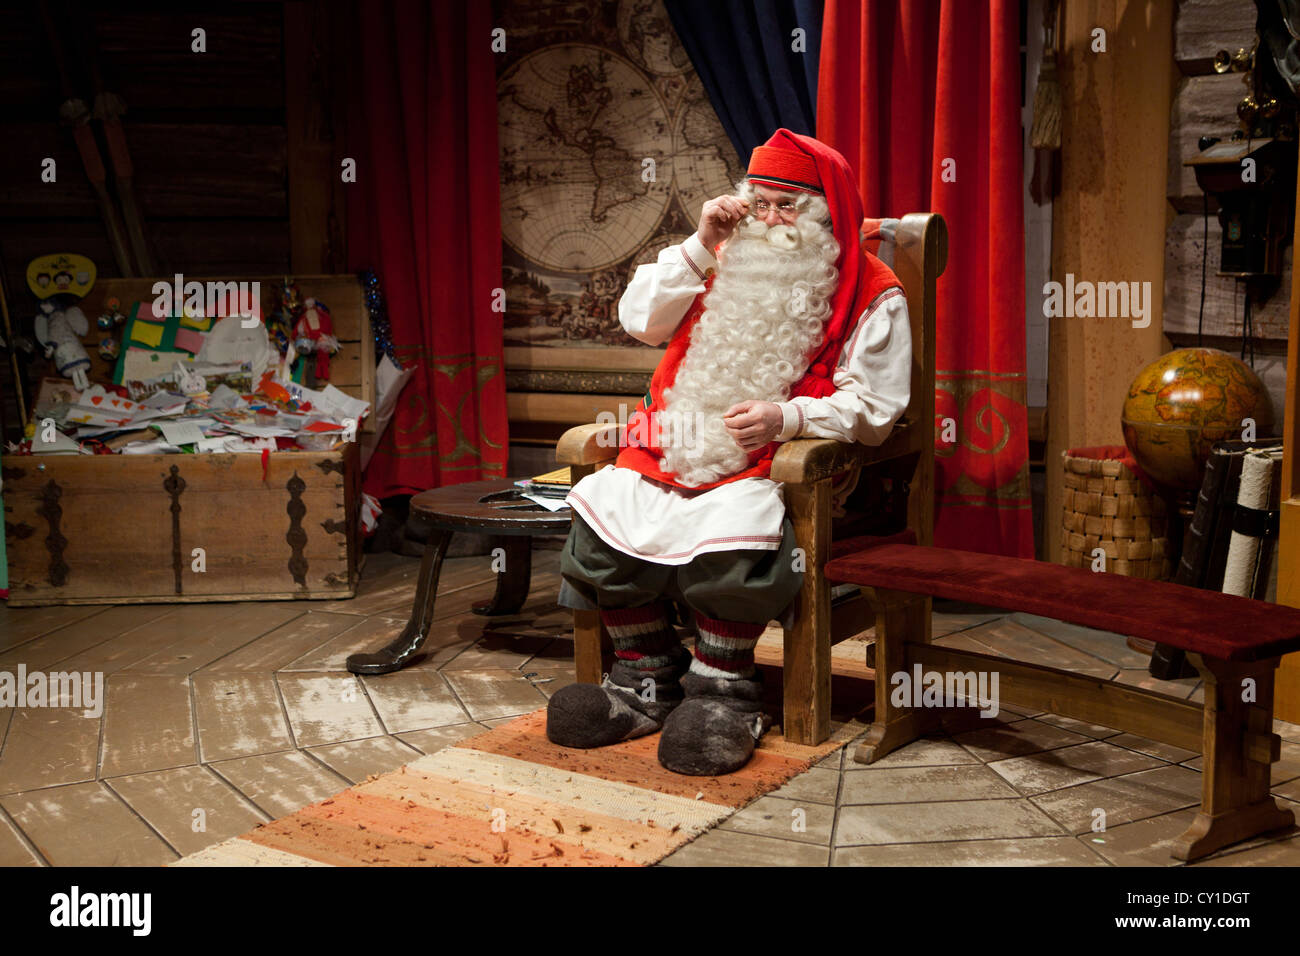 Santa Claus Office In North Finland Stock Photo 51049064